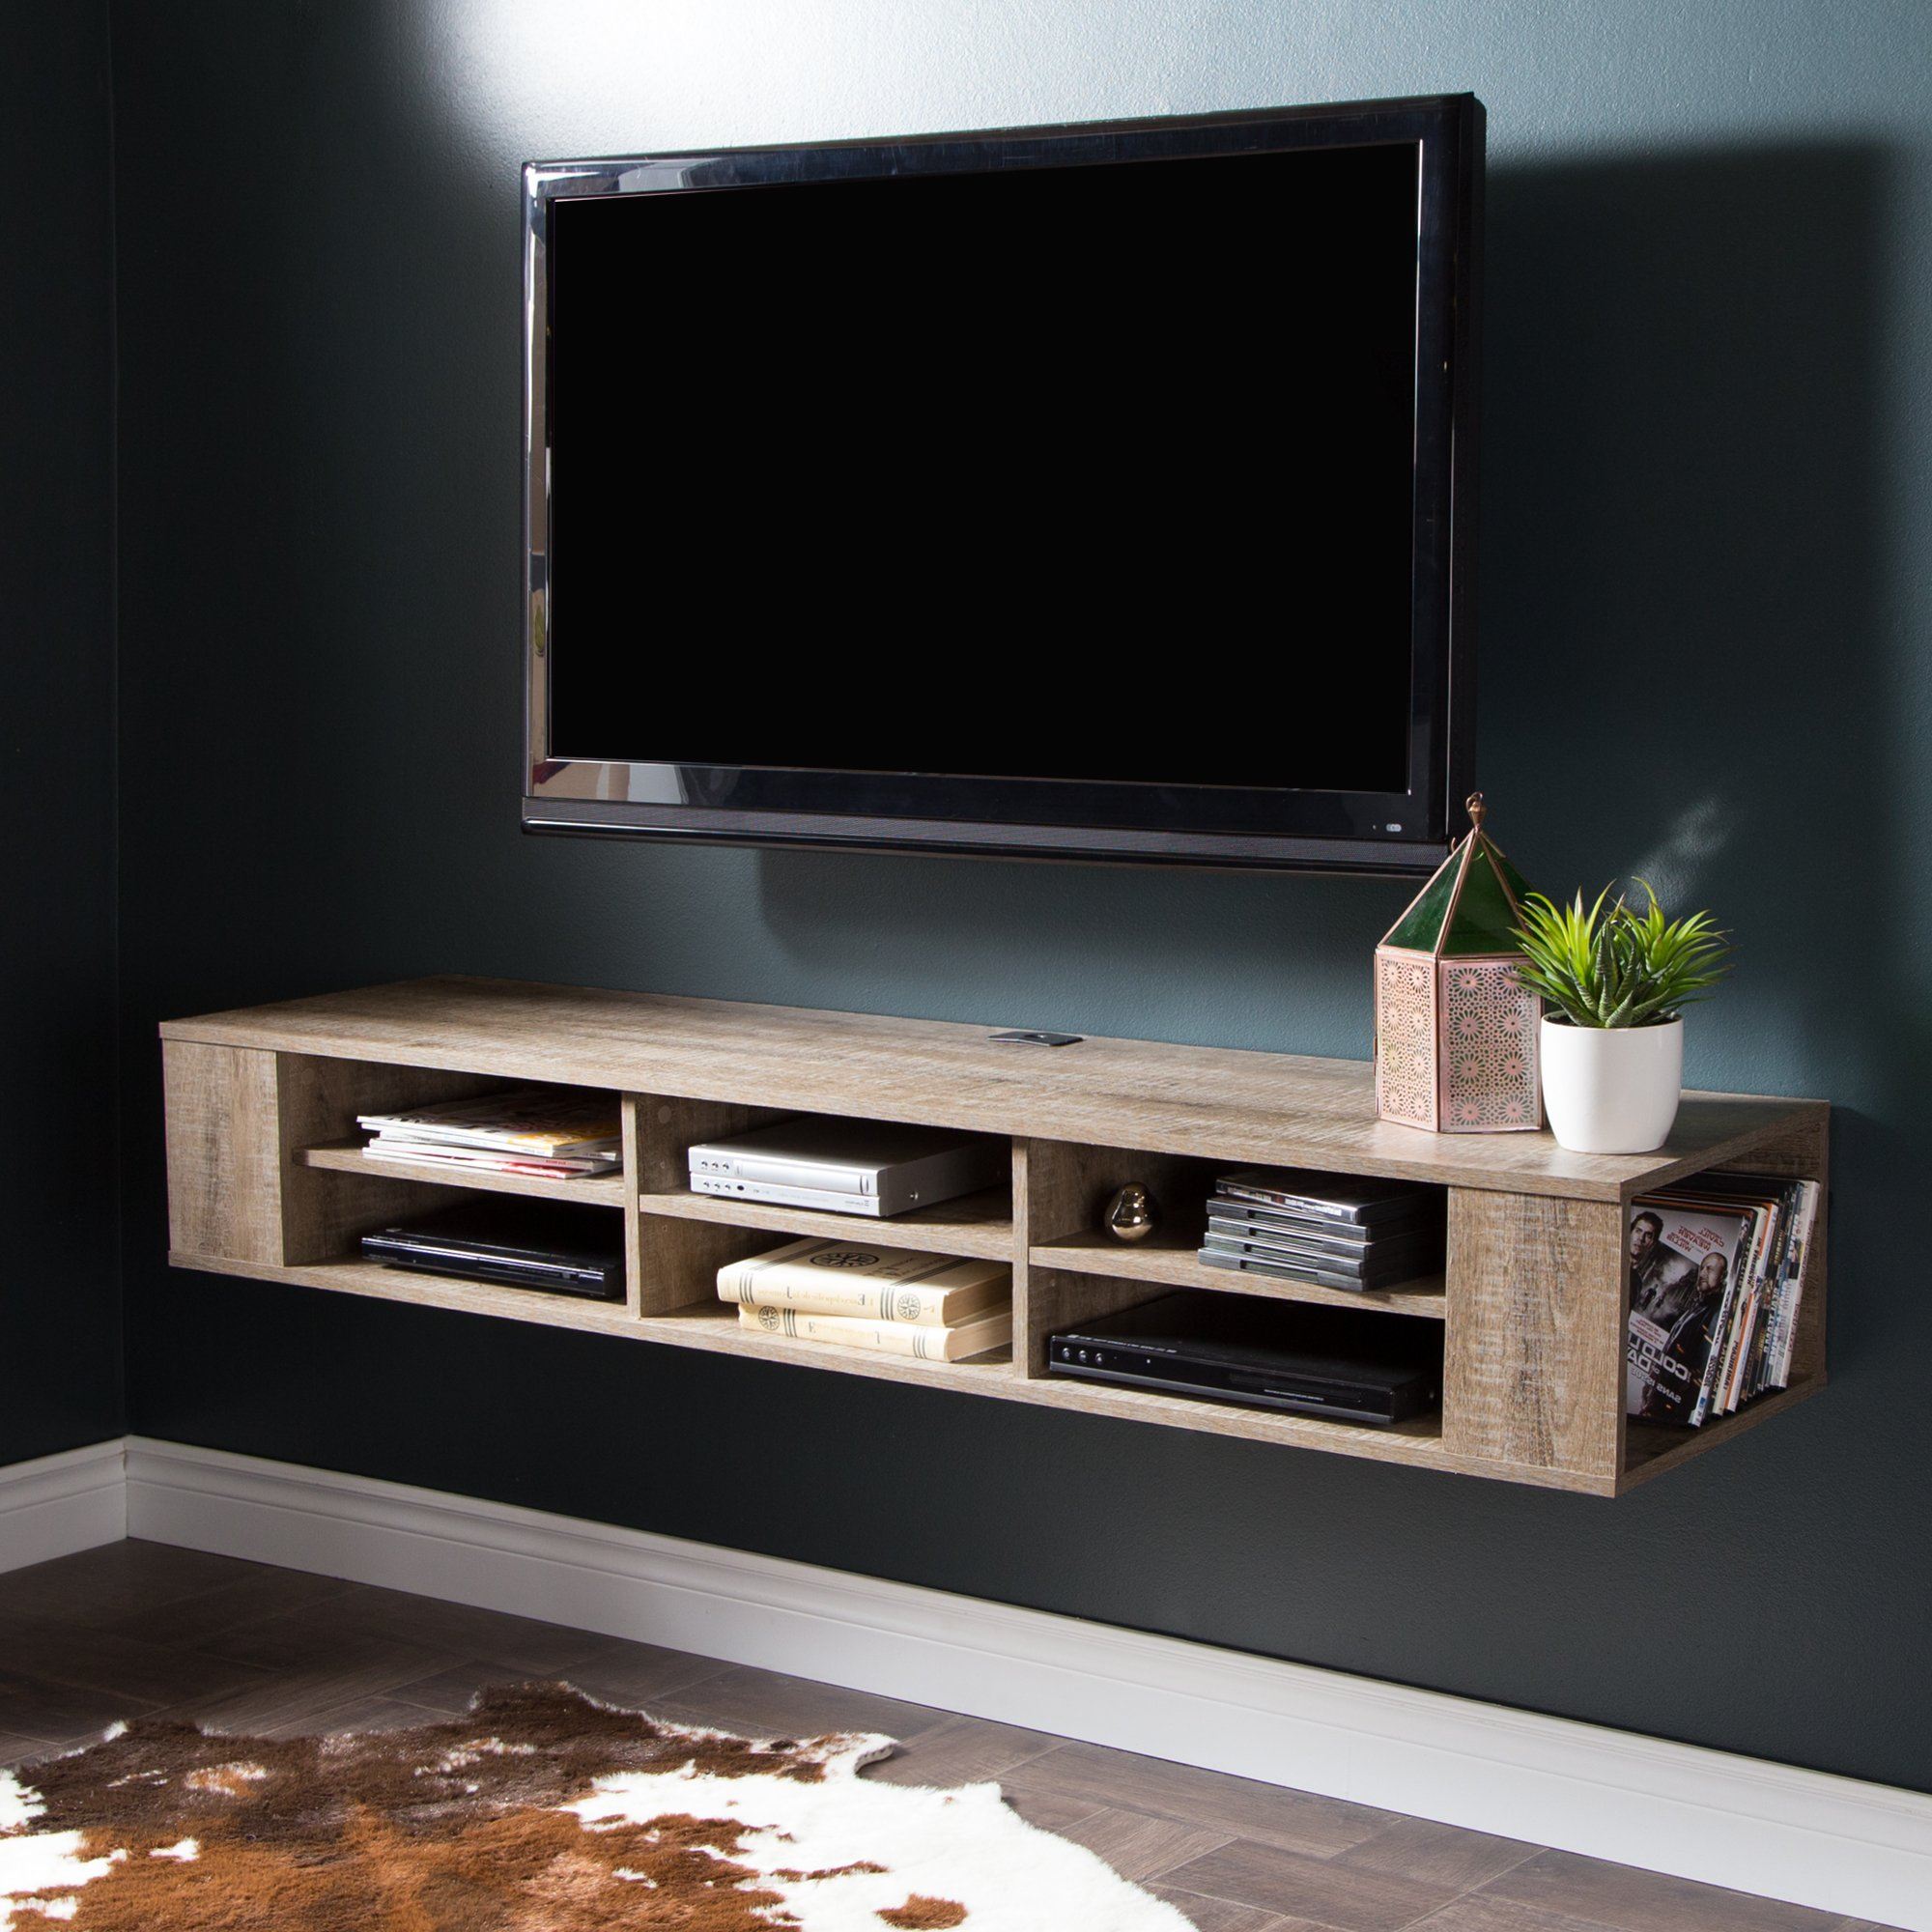 South Shore City Life Wall Mounted Media Console, 66'', Weathered Oak